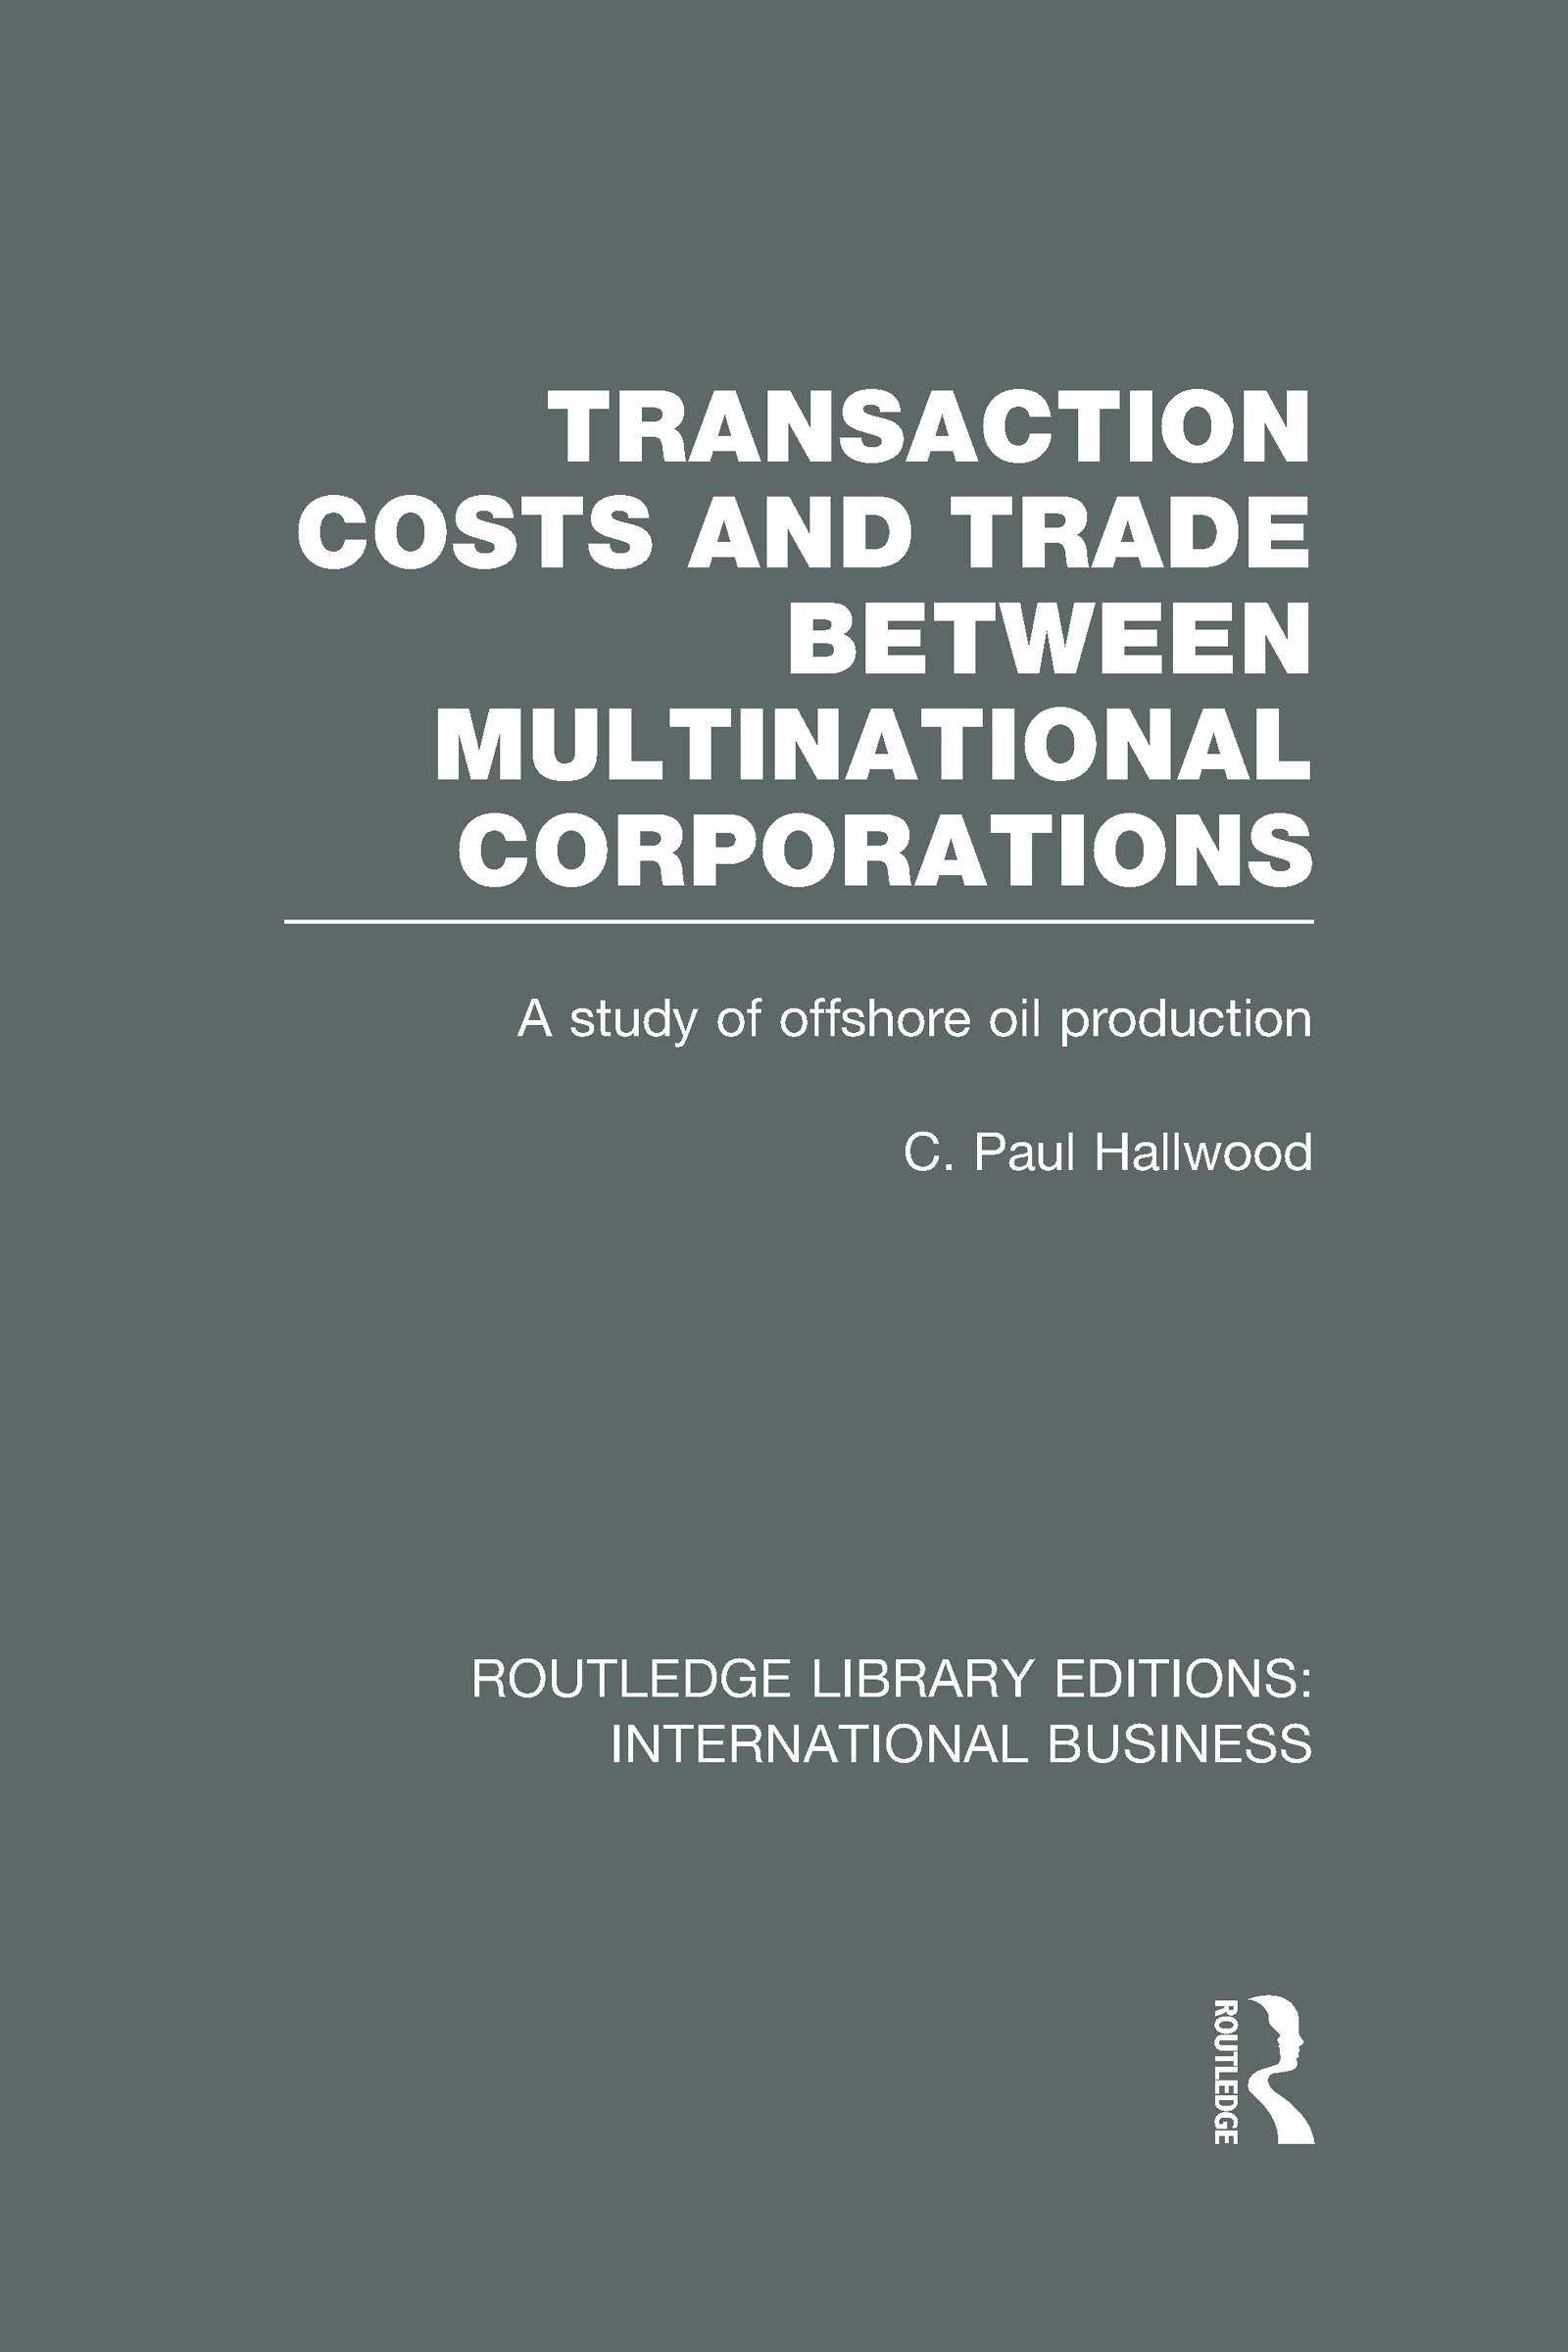 Transaction Costs & Trade Between Multinational Corporations (RLE International Business) (Hardback) book cover